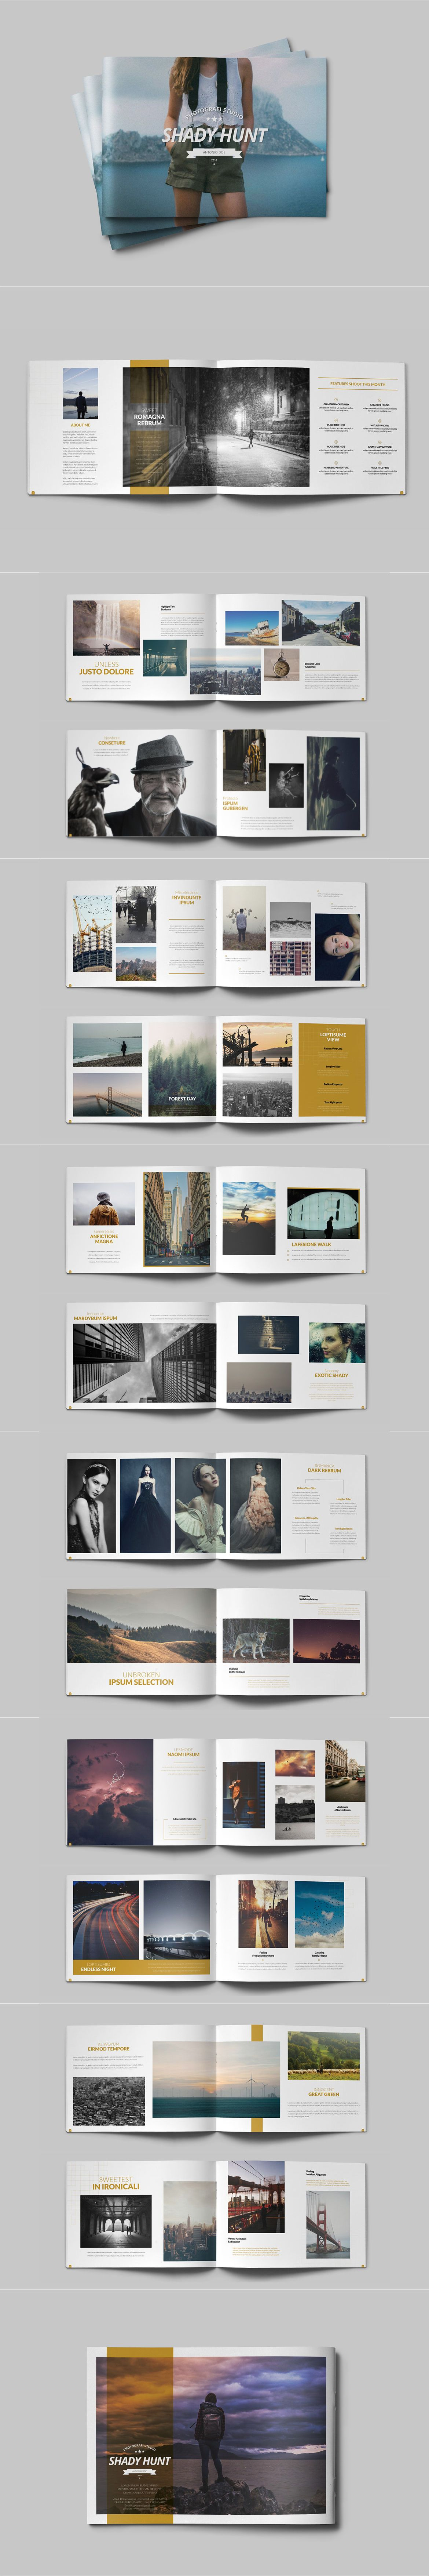 28 Pages Portfolio Album A4 Template InDesign INDD | Brochure ...